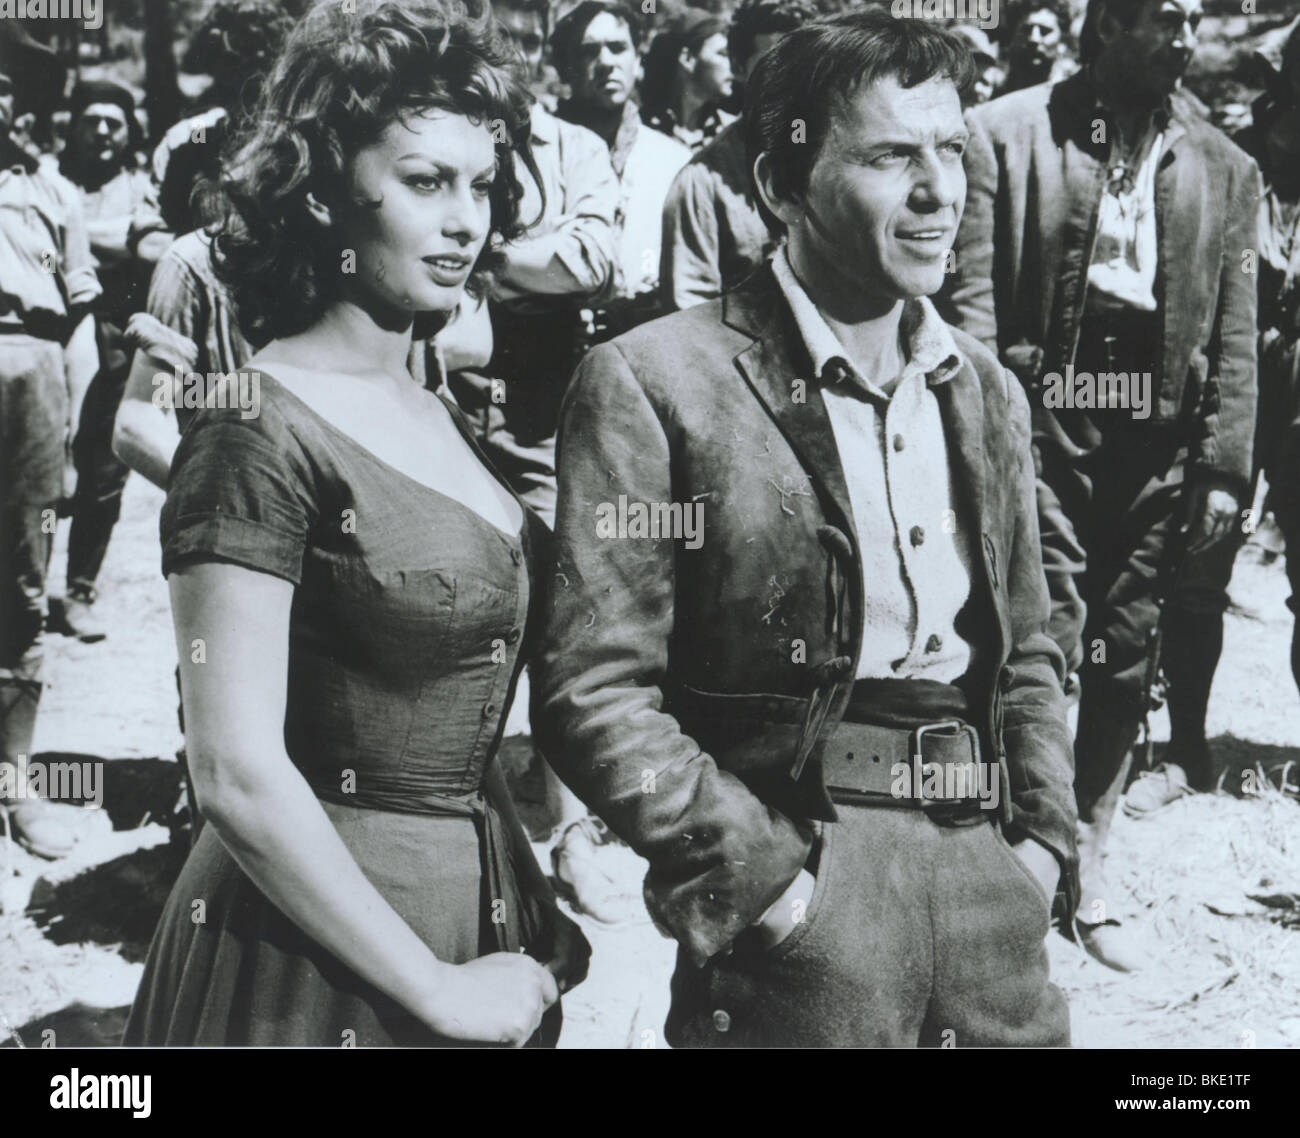 THE PRIDE AND THE PASSION (1957) SOPHIA LOREN, FRANK SINATRA PRPS 002P - Stock Image